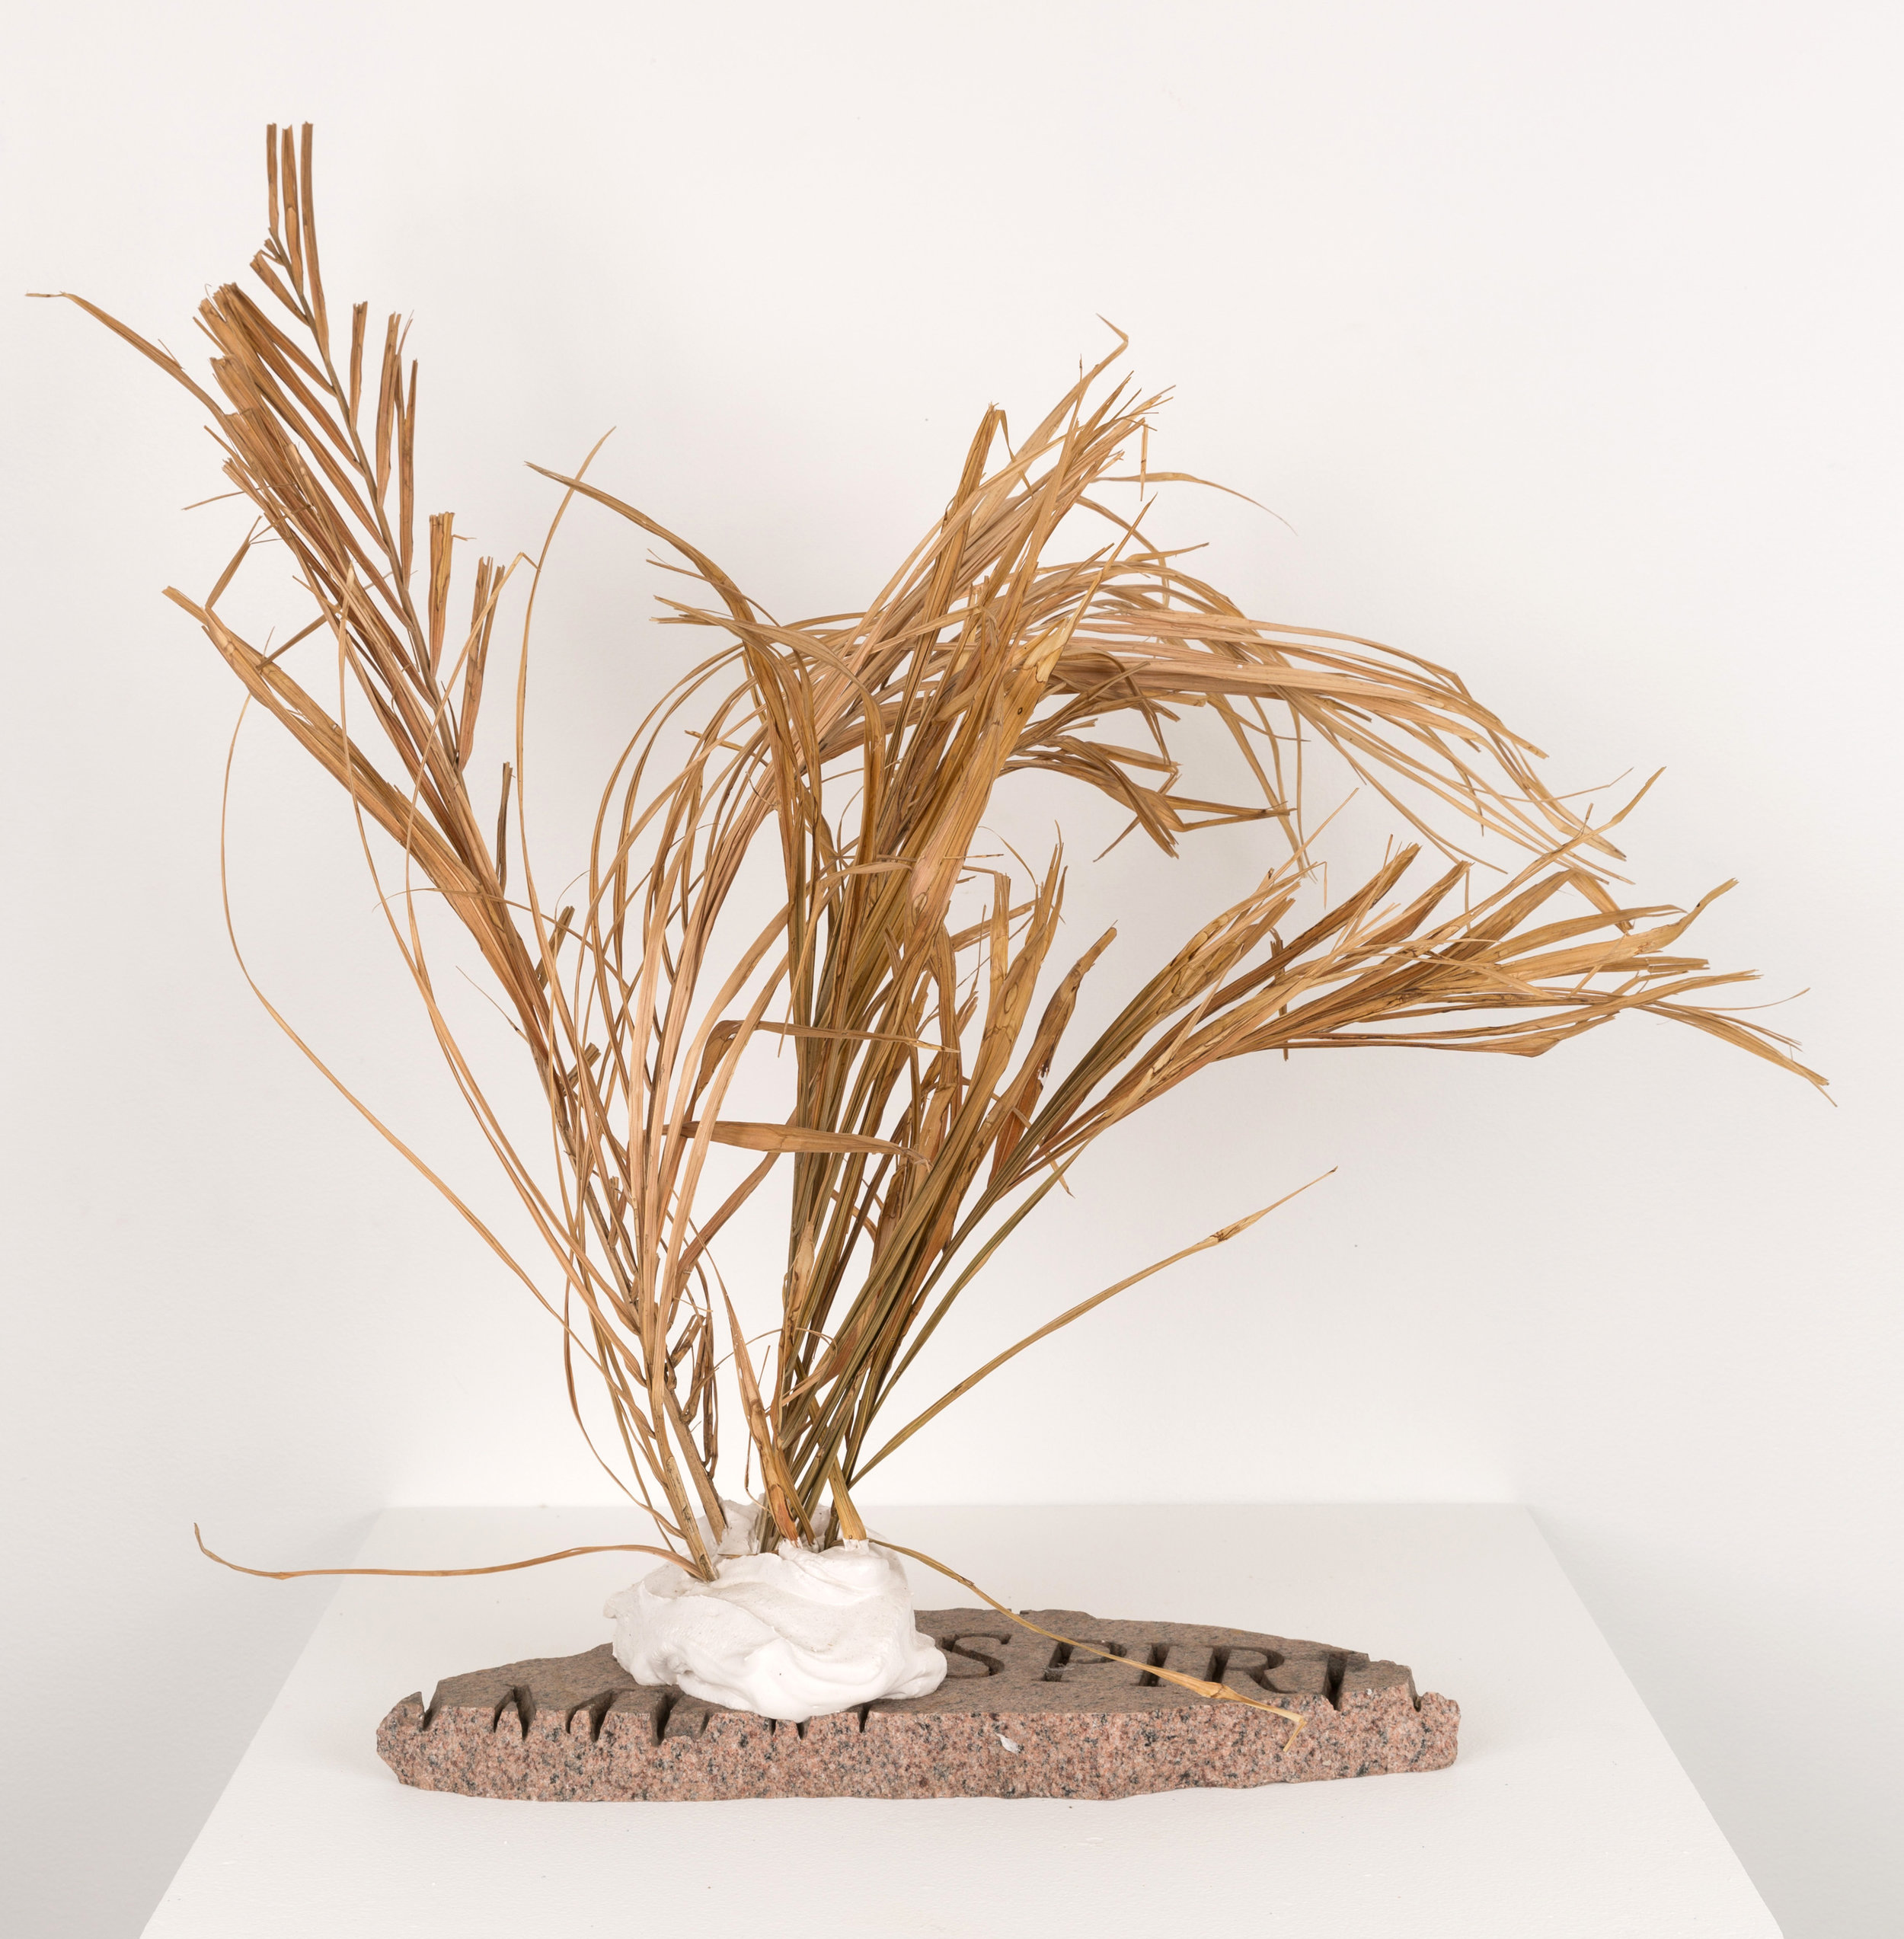 (offering) , 2018 etched granite, Hydrocal, palm frond 26 x 24 x 17 in